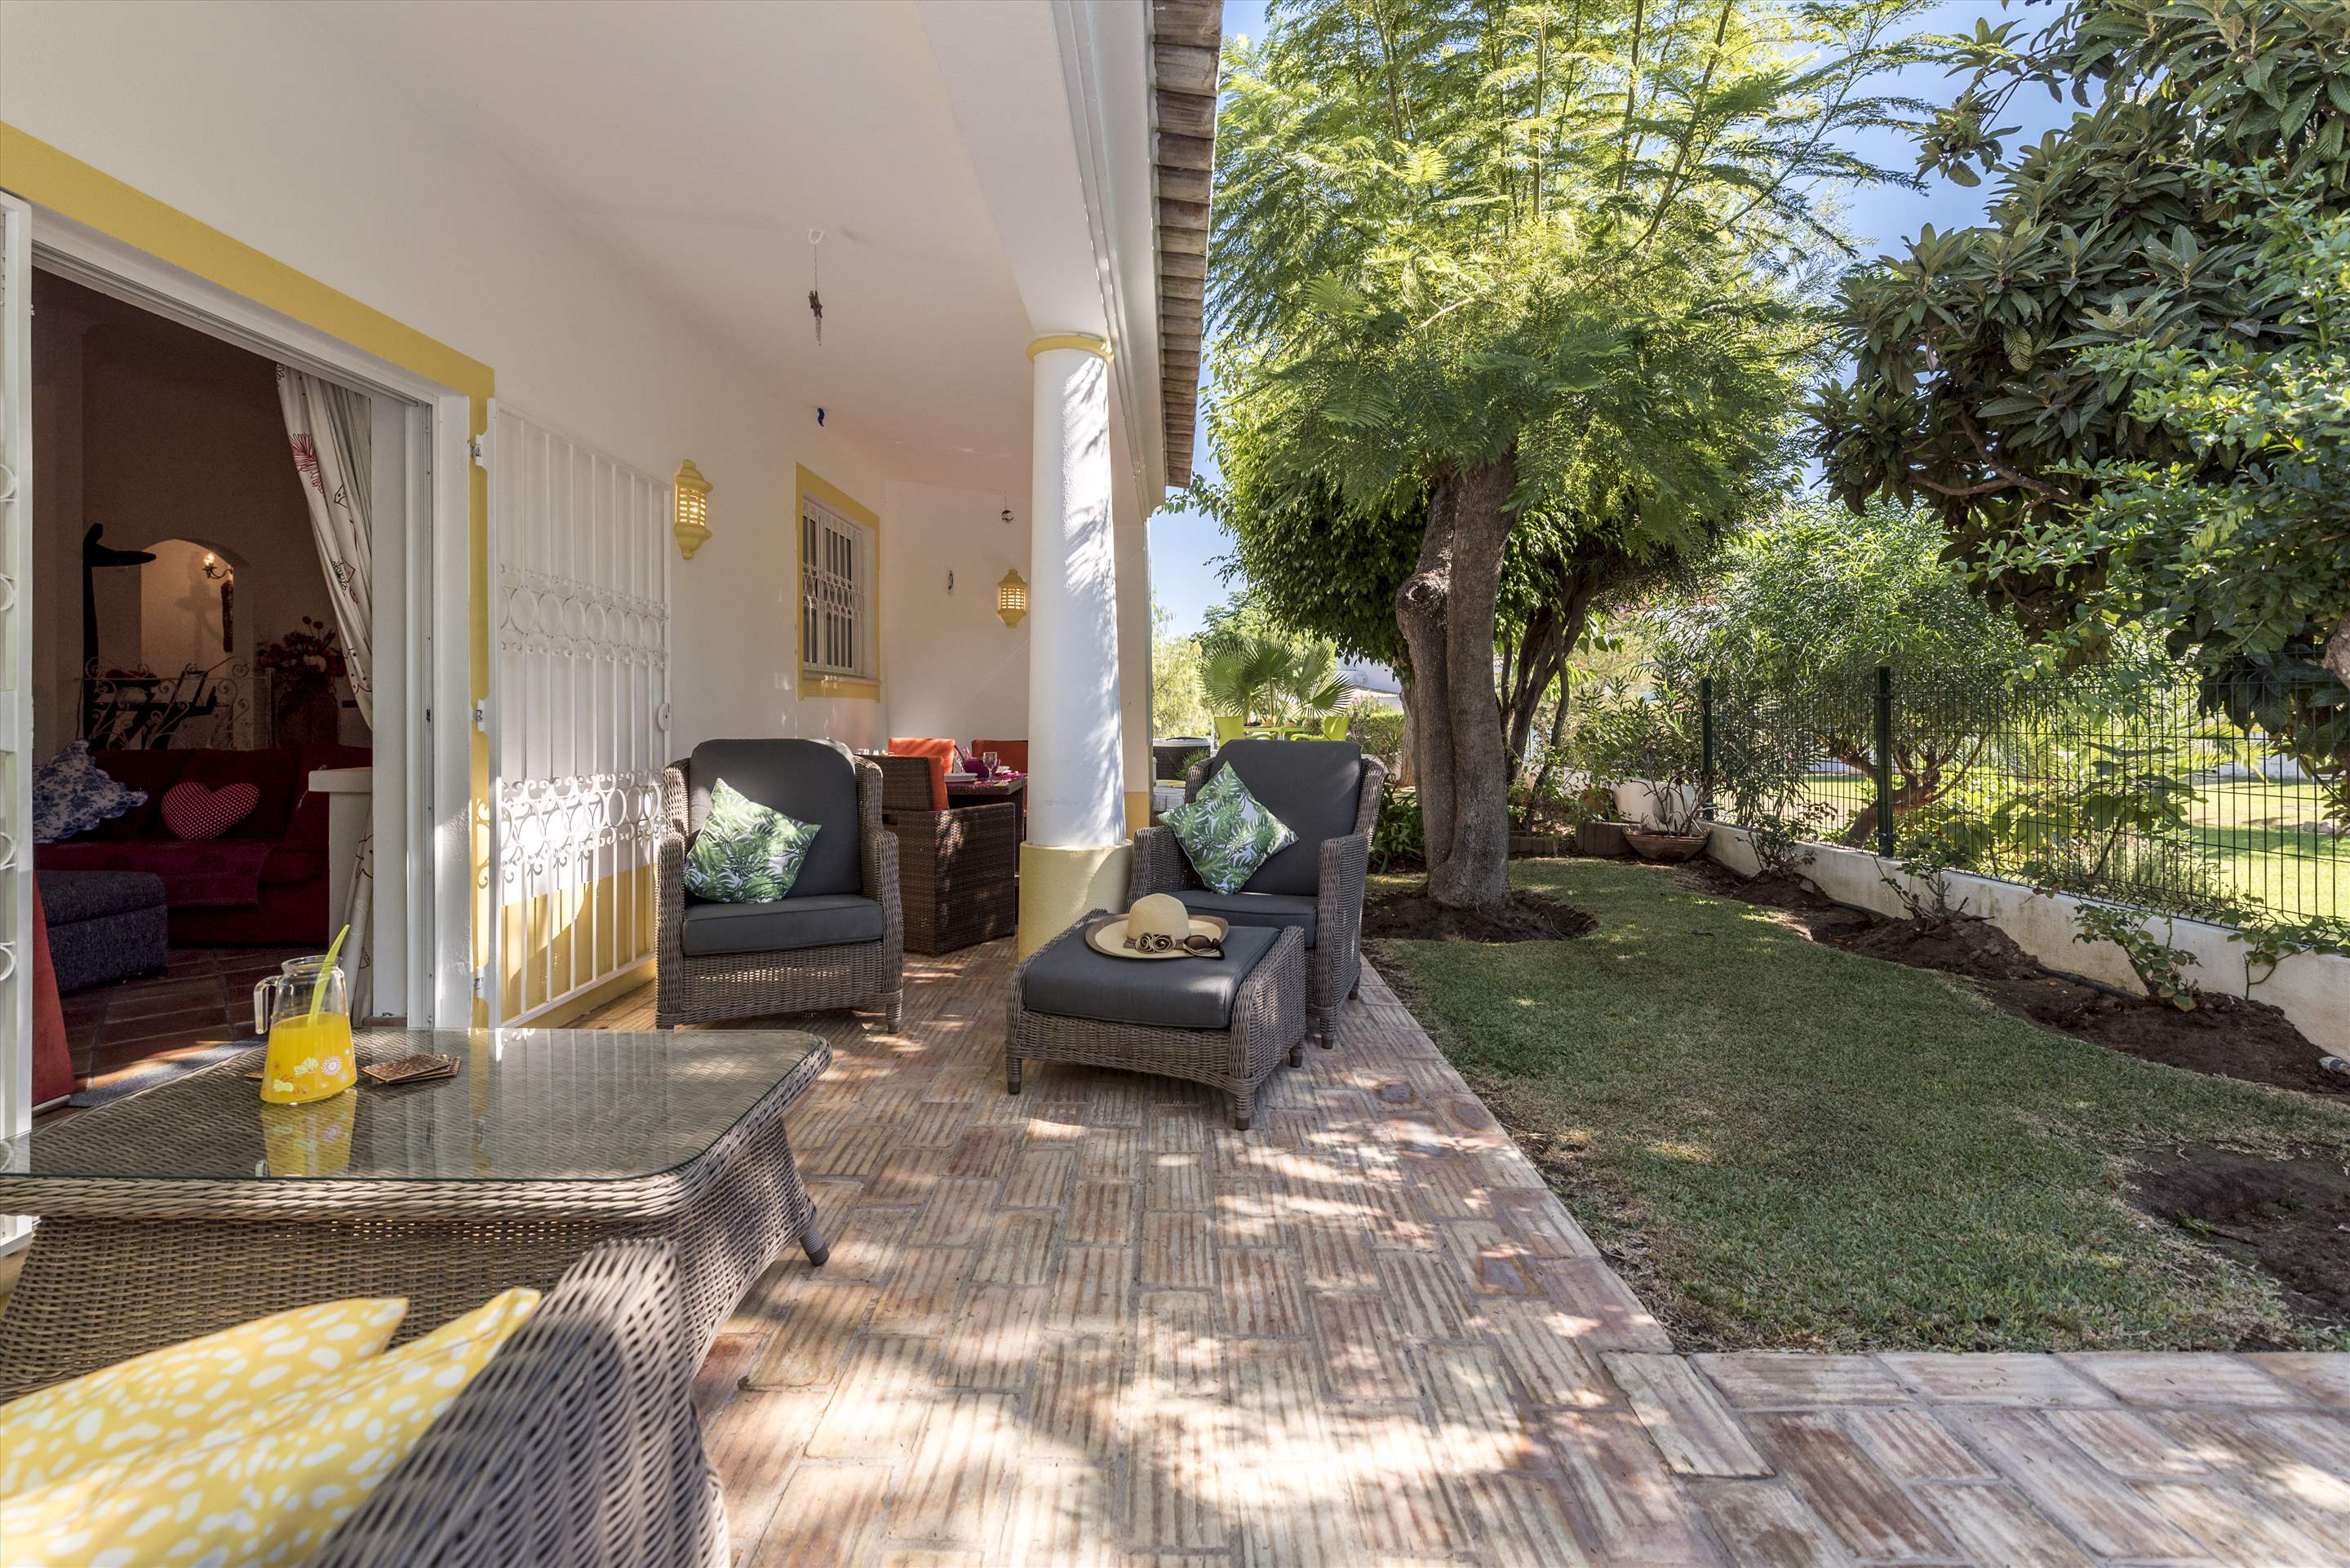 Casa Guia, Two Bedroom Rate, 2 bedroom villa in Gale, Vale da Parra and Guia, Algarve Photo #27